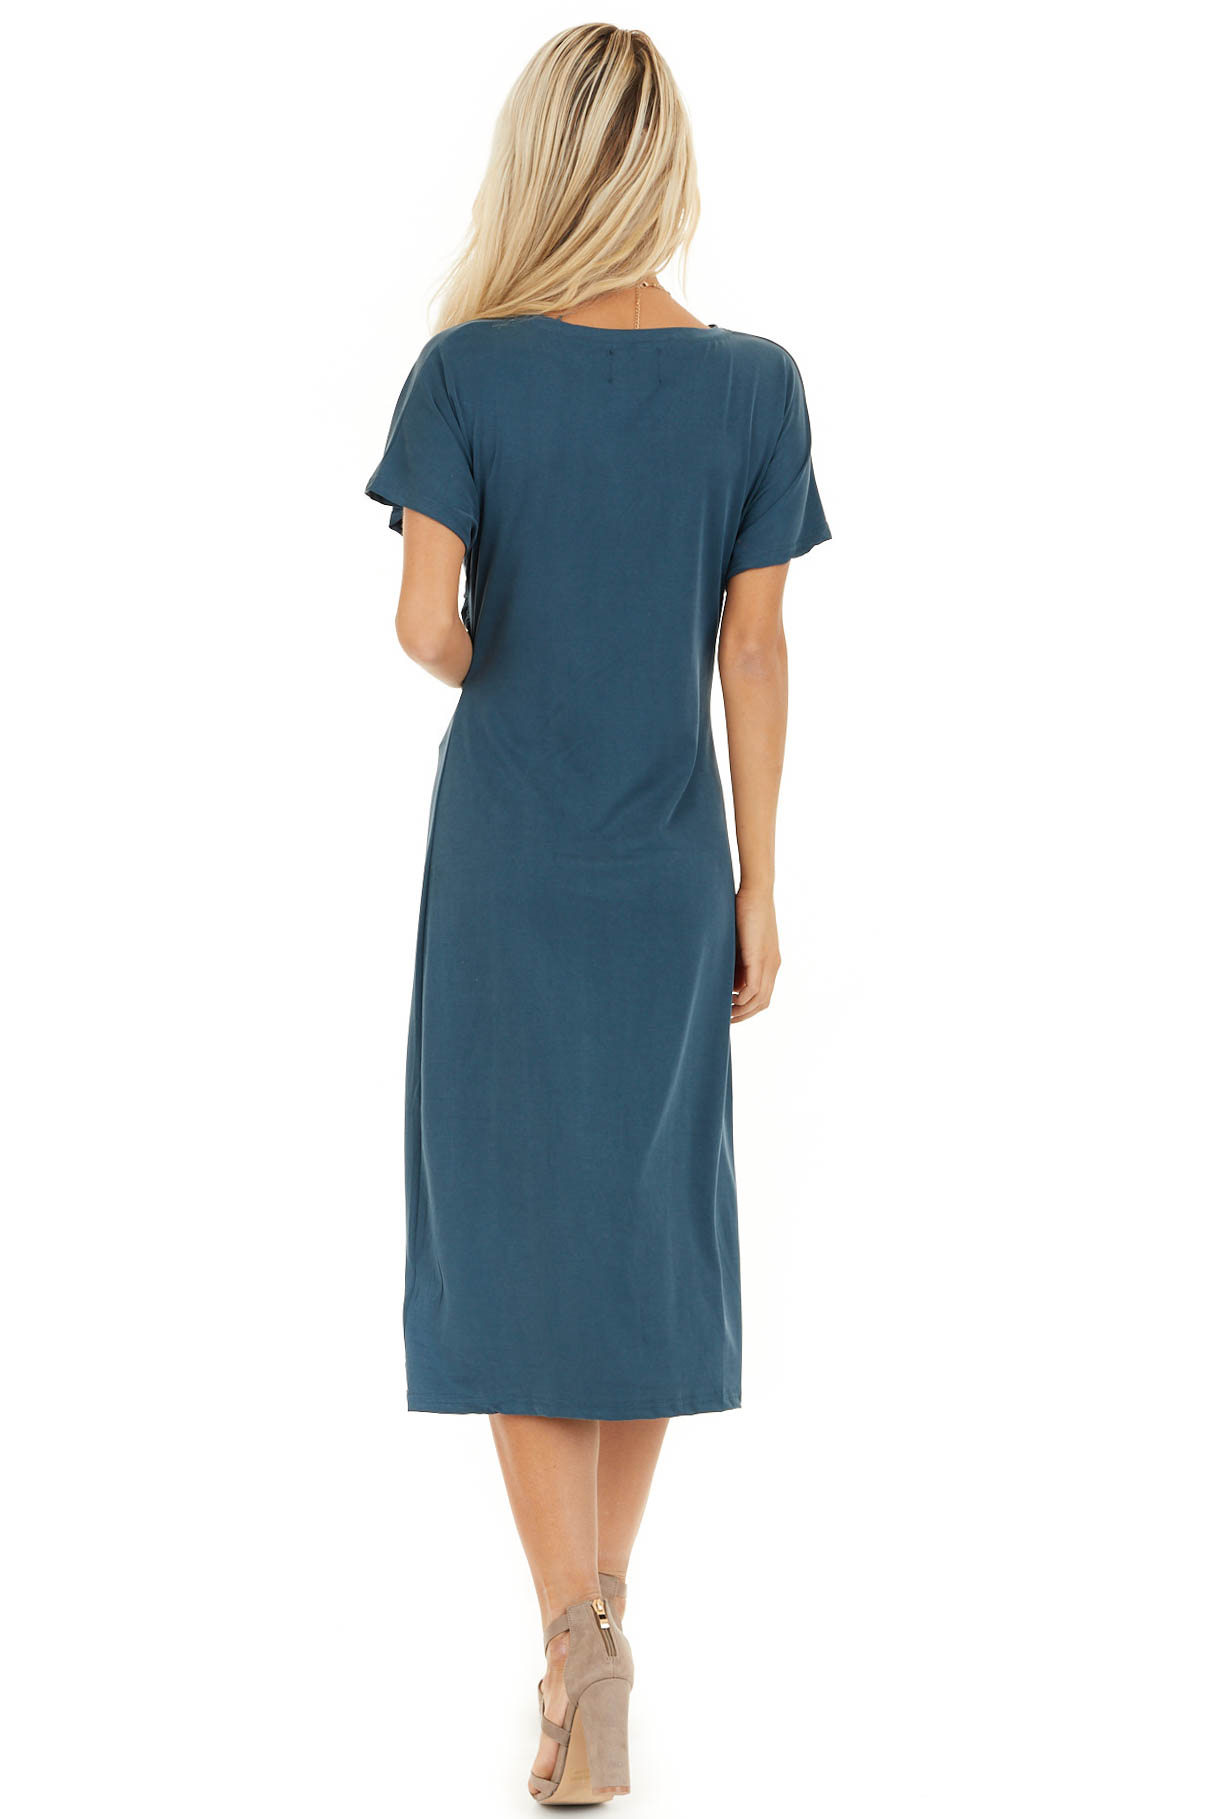 Deep Teal Short Sleeve Midi Dress with Front Twist Detail back full body